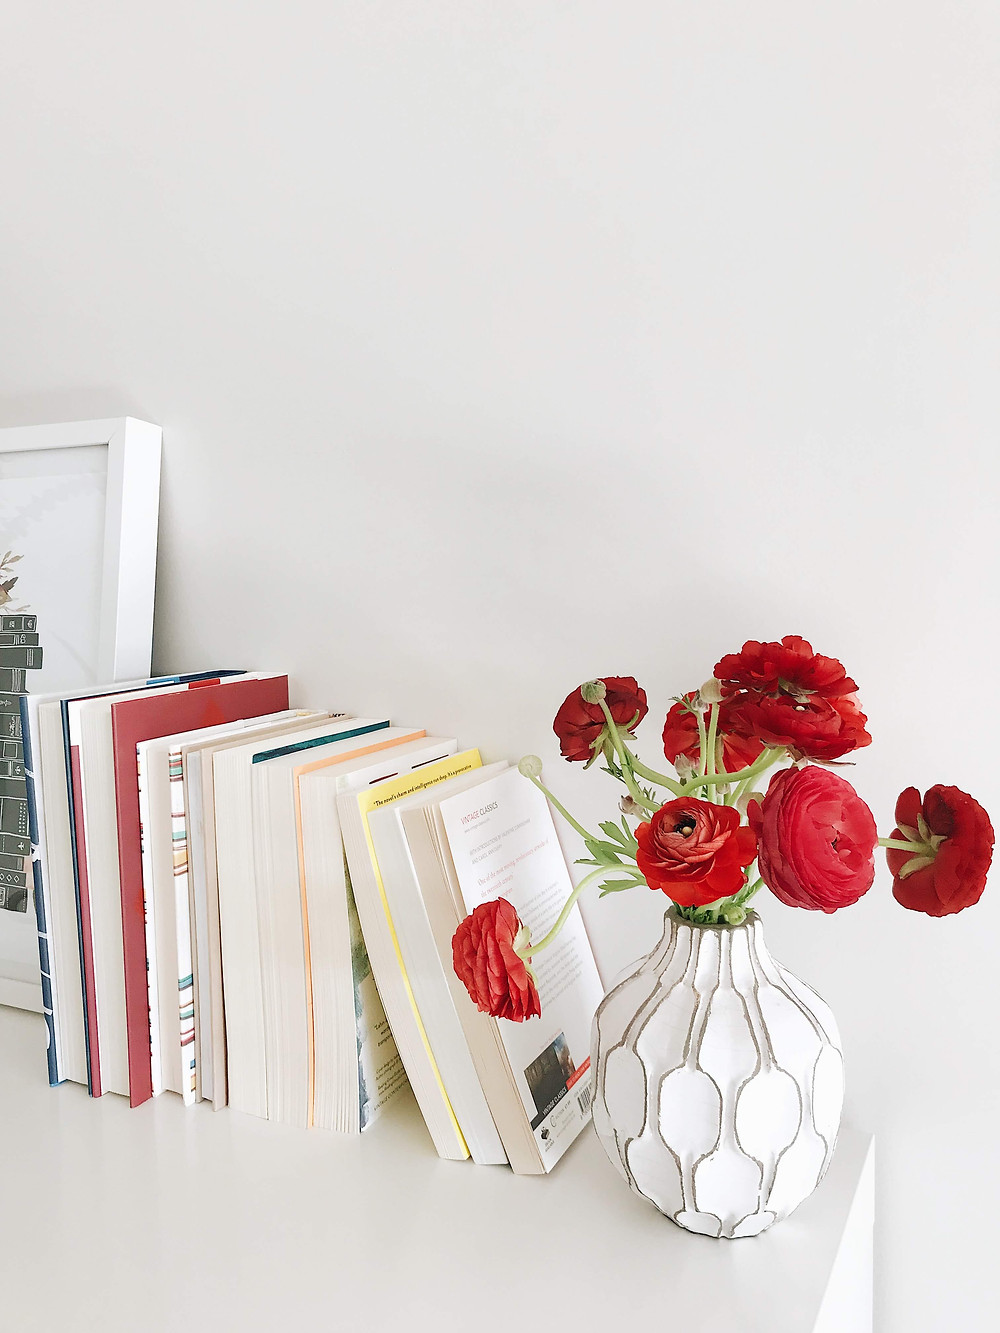 a bookshelf featuring books and flowers